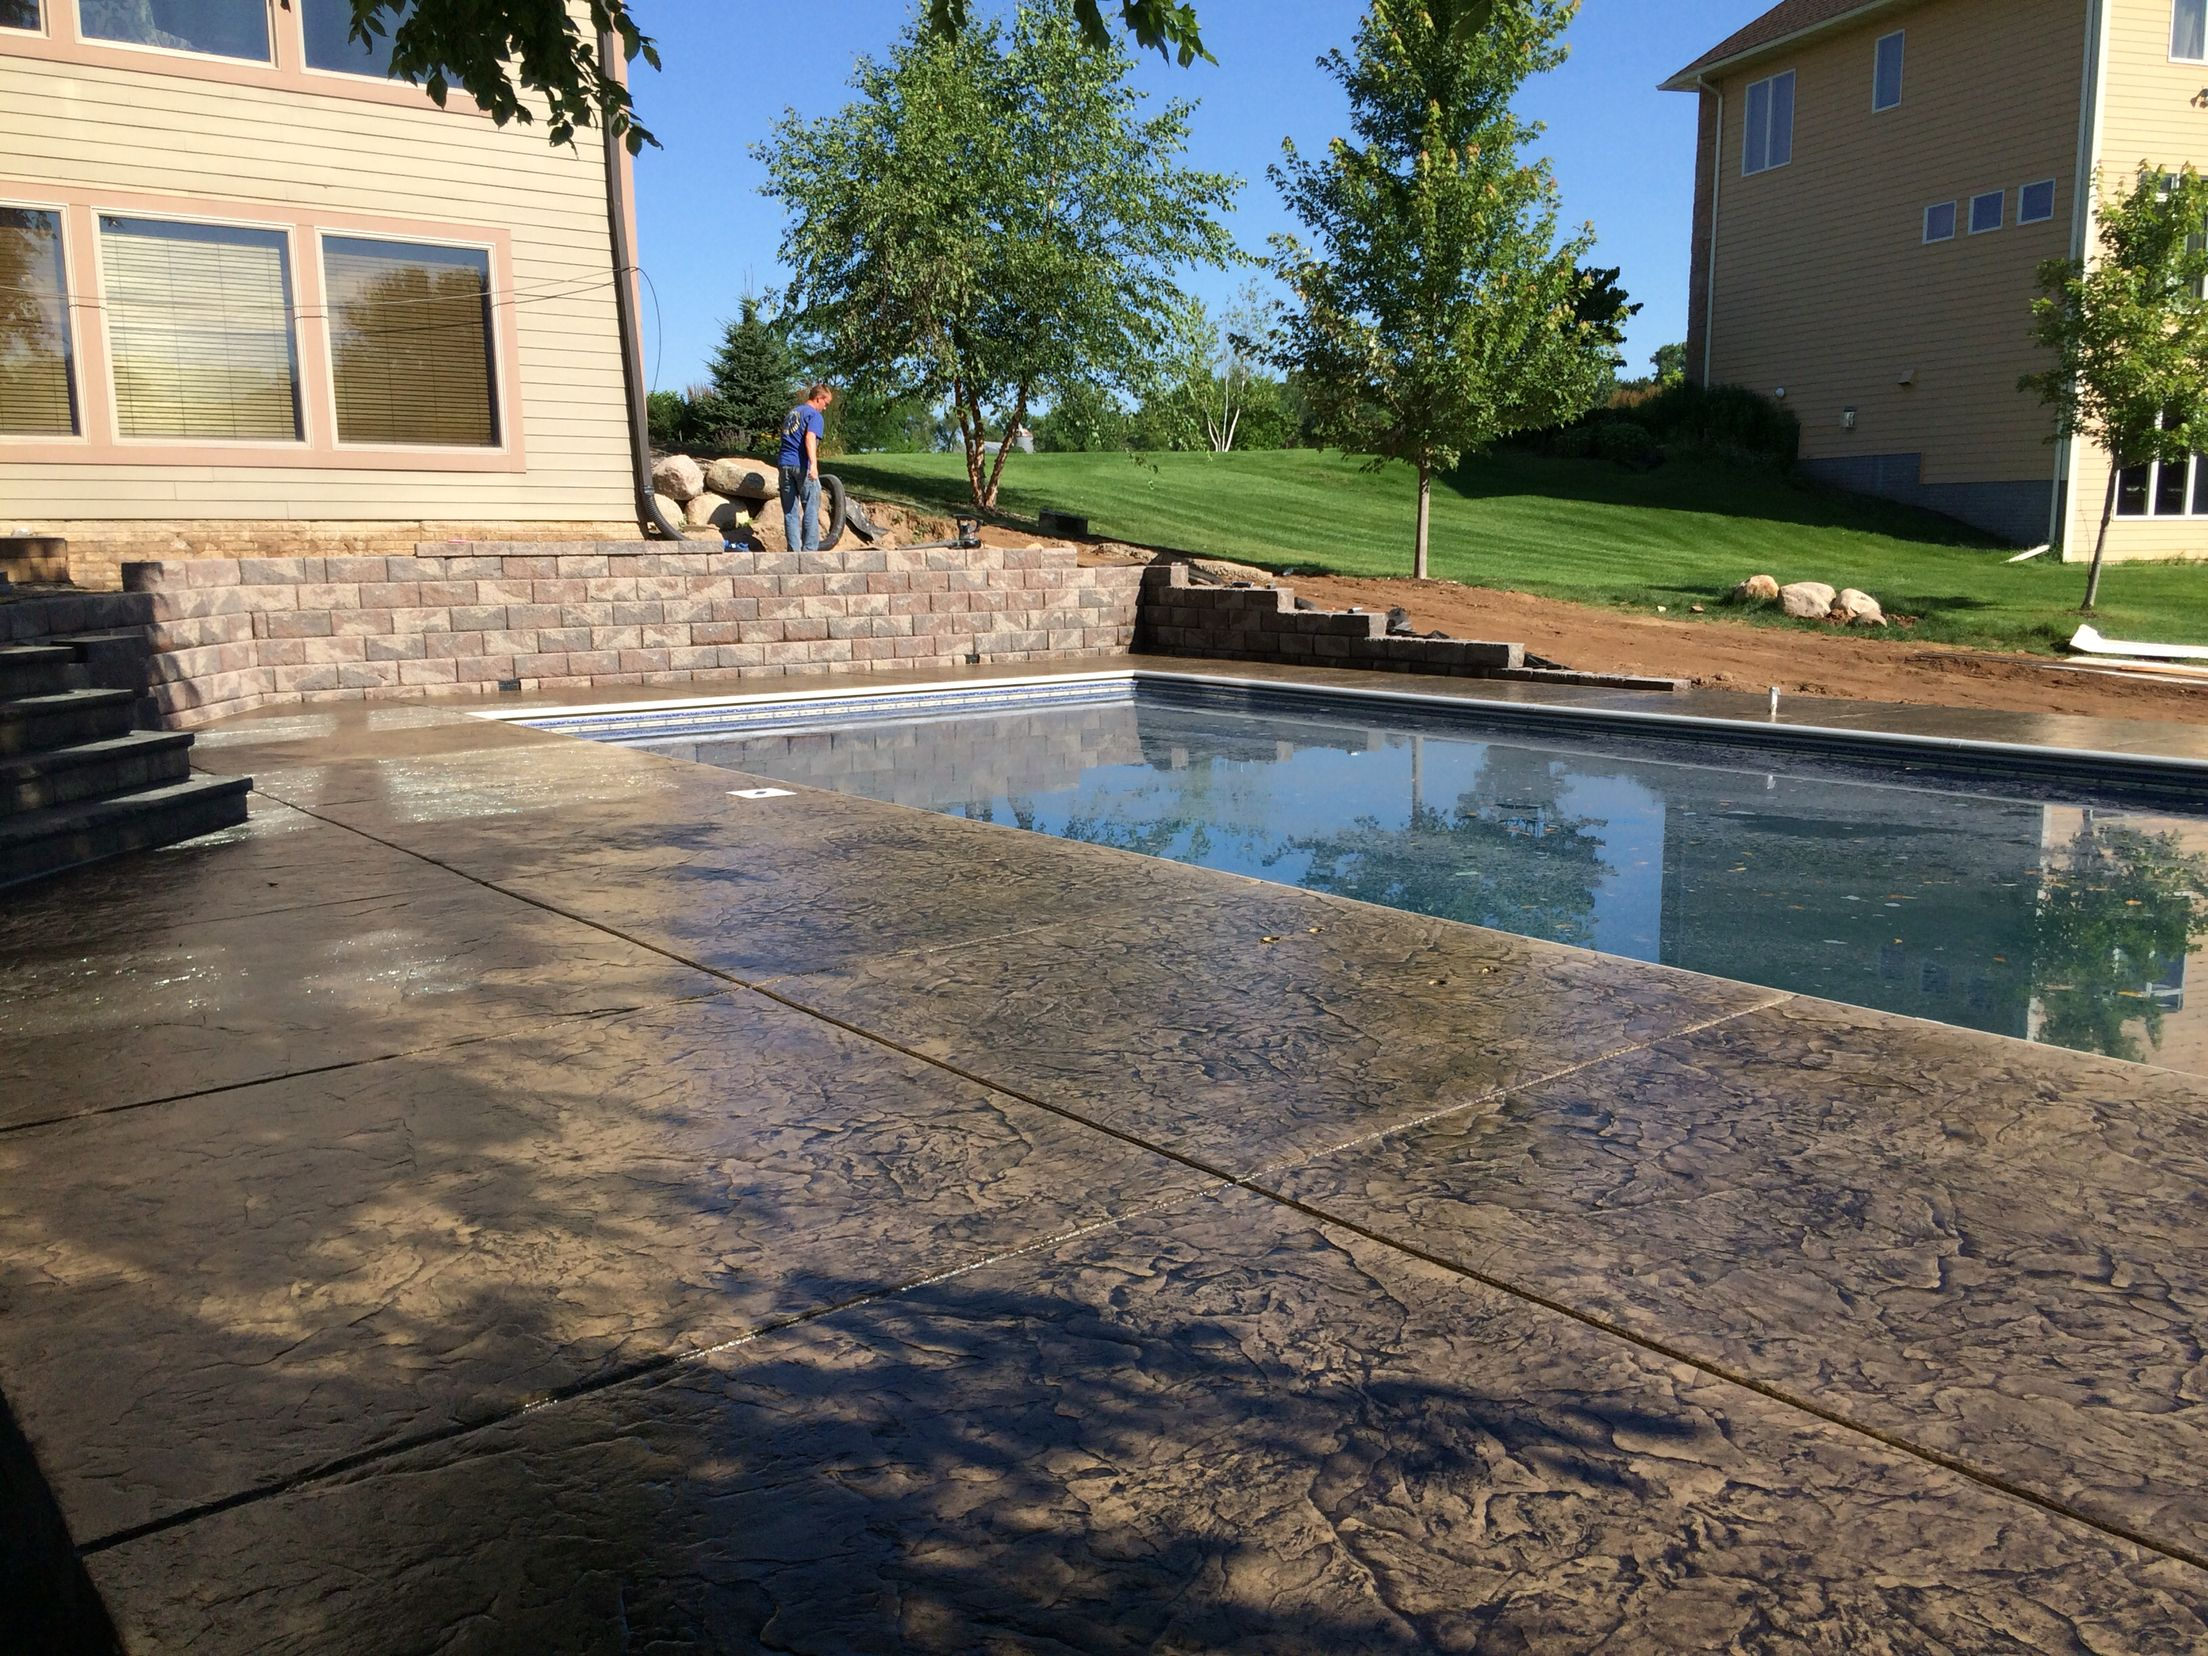 Decorative Concrete Pool Deck With Cantilevered Edge Over Retaining Wall By Sierra Concrete Arts Concrete Pool Concrete Decor Pool Decks